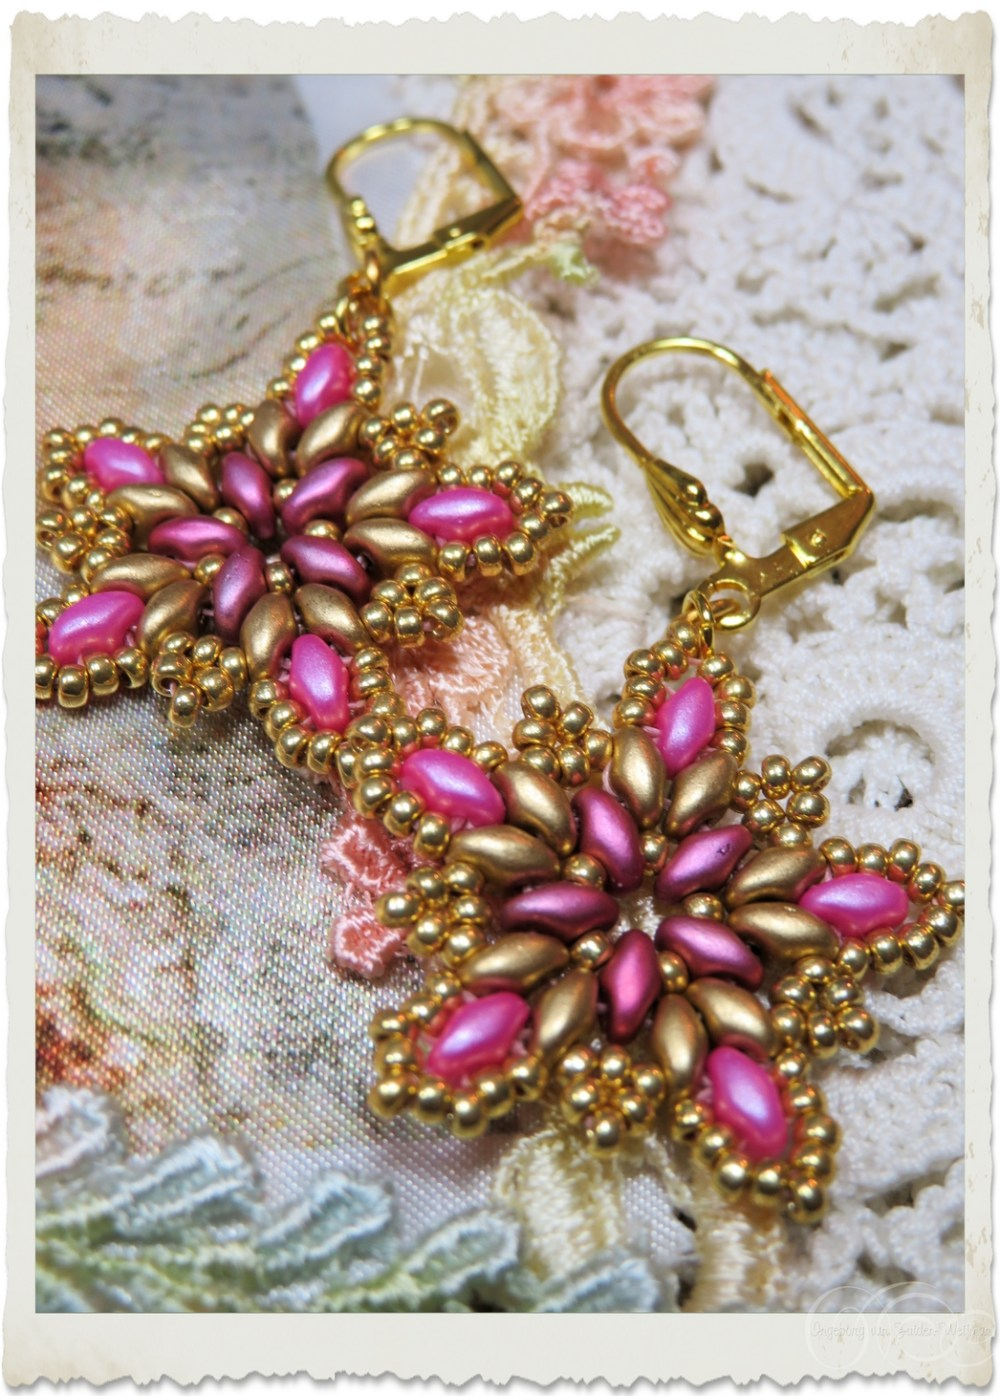 Pink gold star earrings with superduo beads